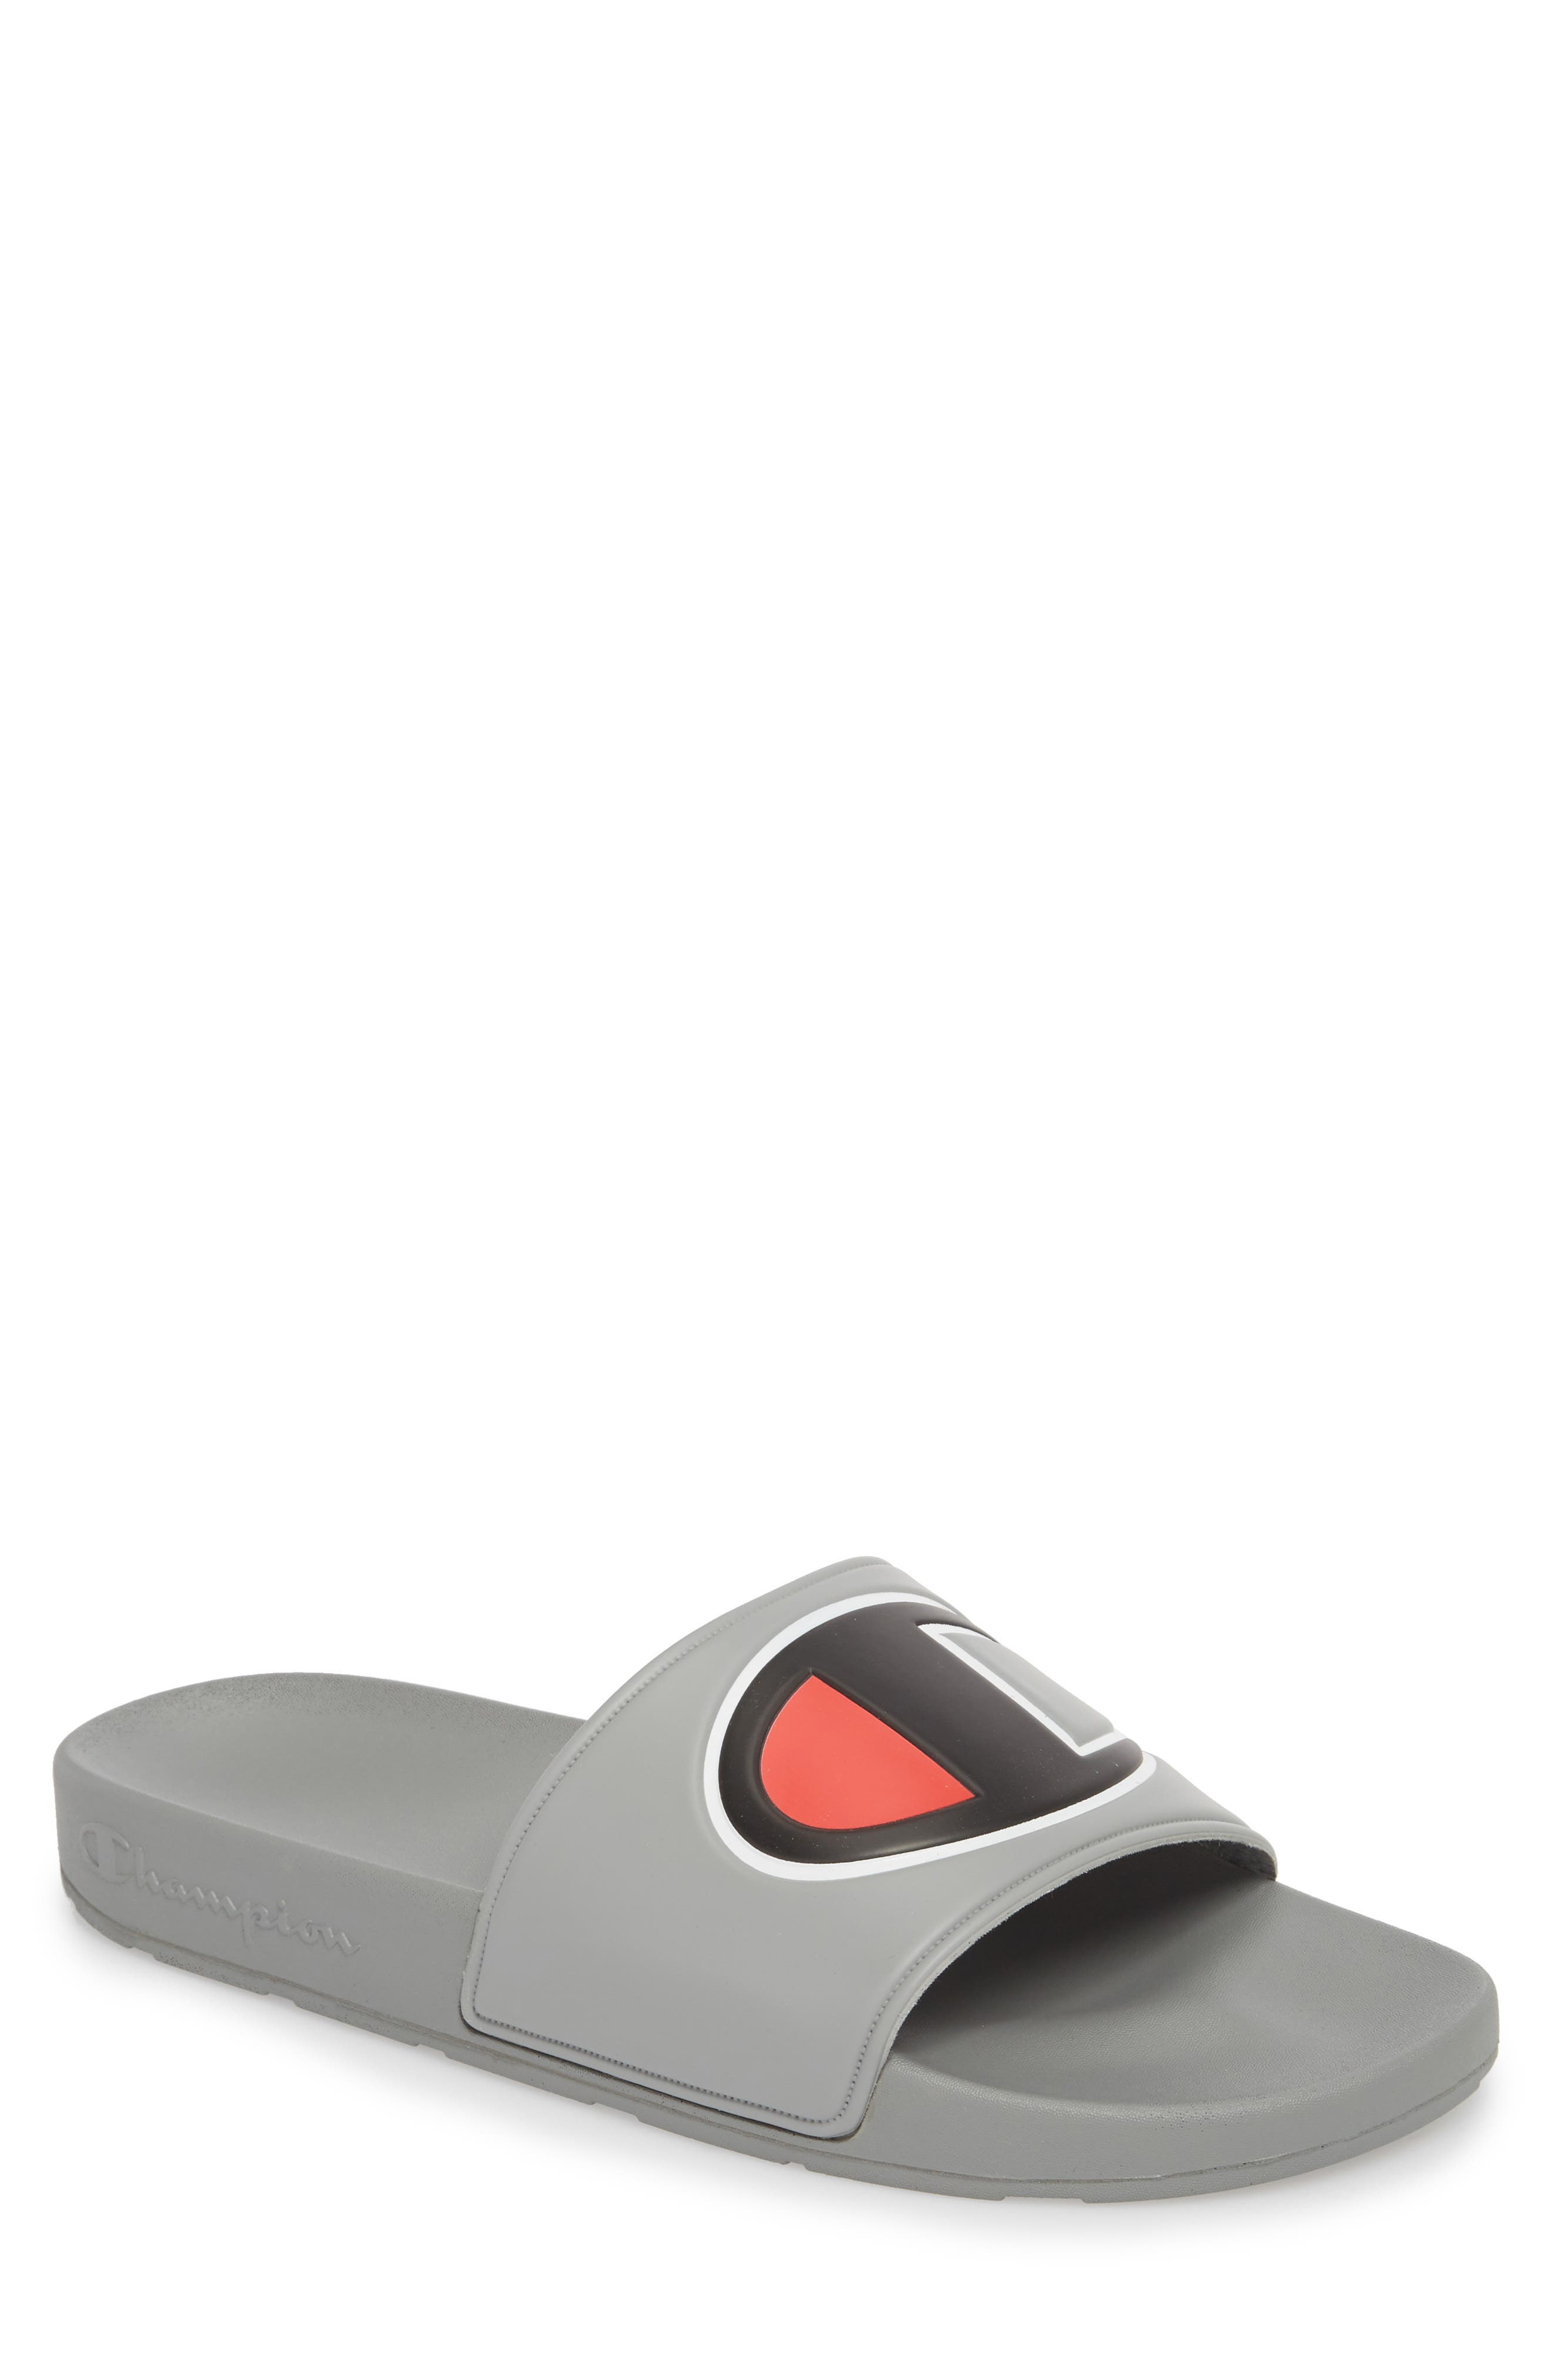 IPO Sports Slide,                         Main,                         color, GREY